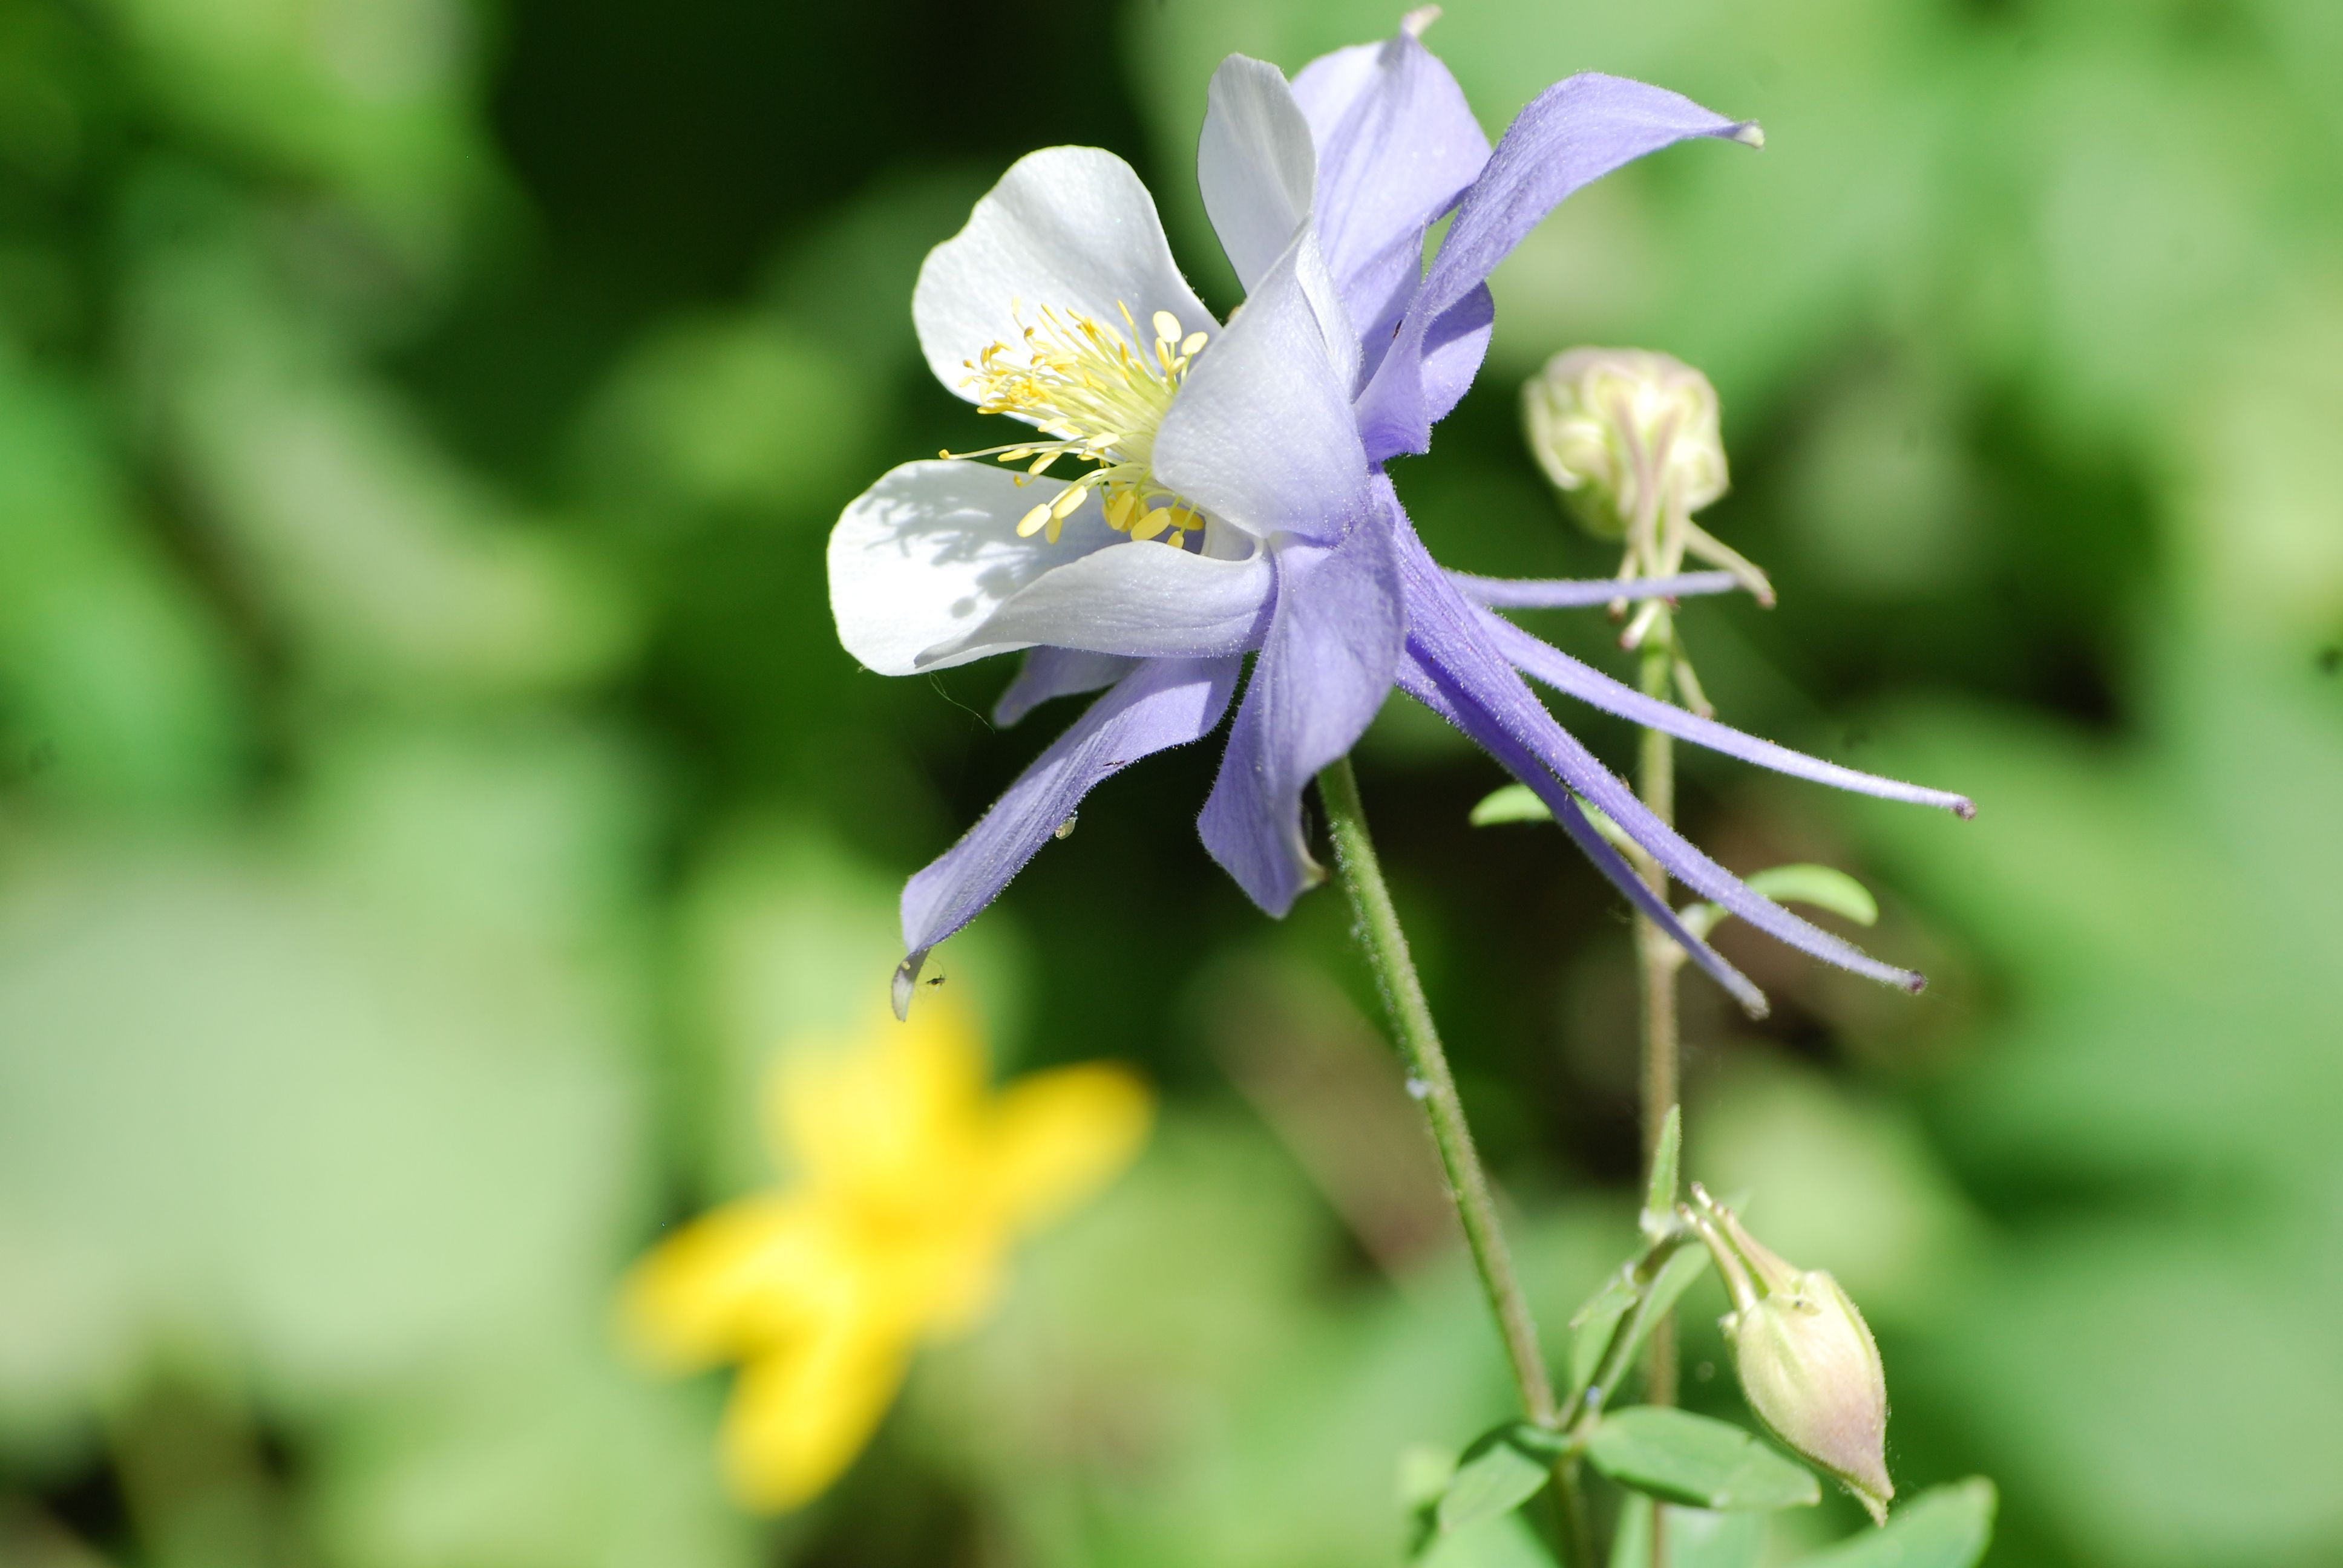 Columbine flowers in colorado steemit steemit rebele93 05g izmirmasajfo